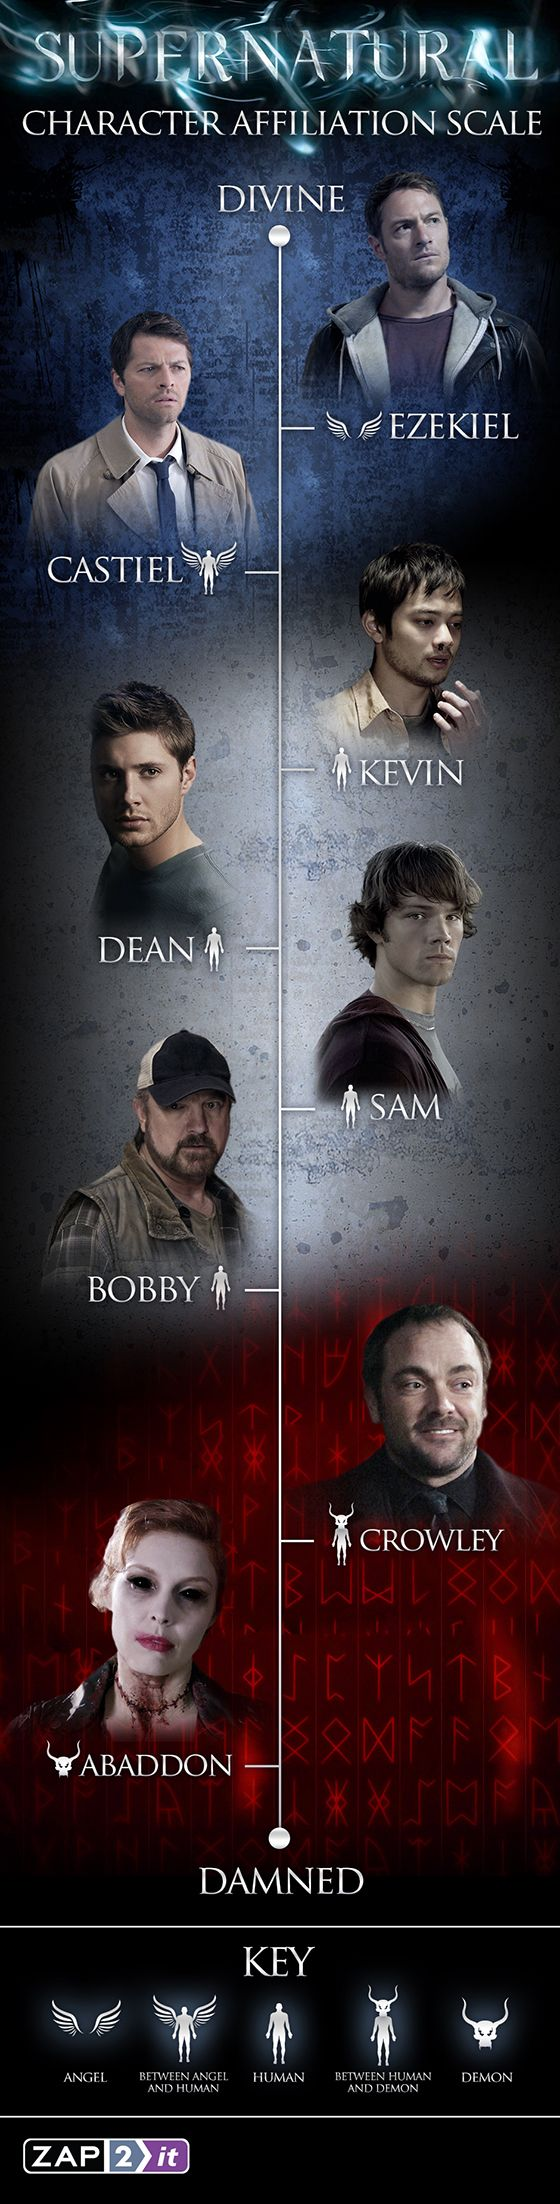 """The stakes are higher than ever on """"Supernatural,"""" so where do all the fan-favorite characters stand on a scale from the divine to the damned? Check out Zap2it's handy character affiliation infographic here ..."""